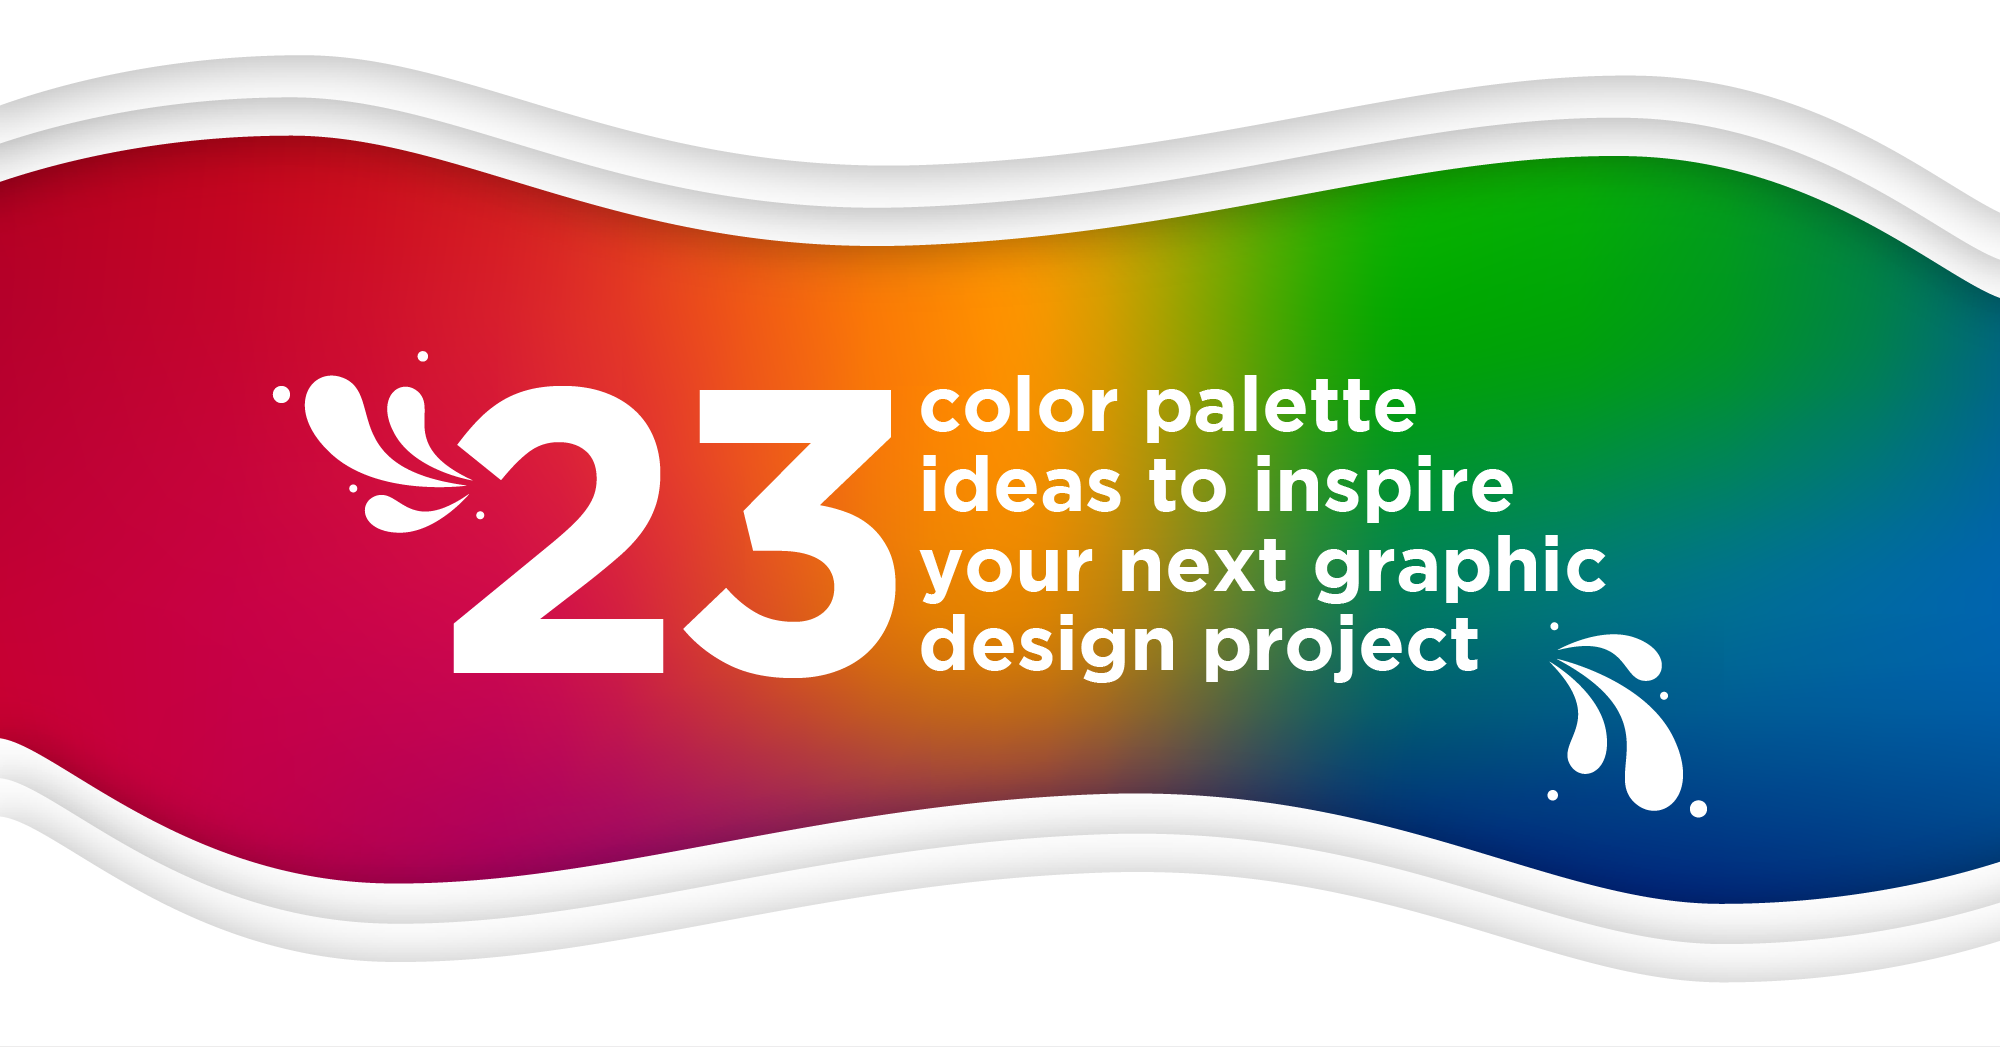 1606366004color-palette-ideas